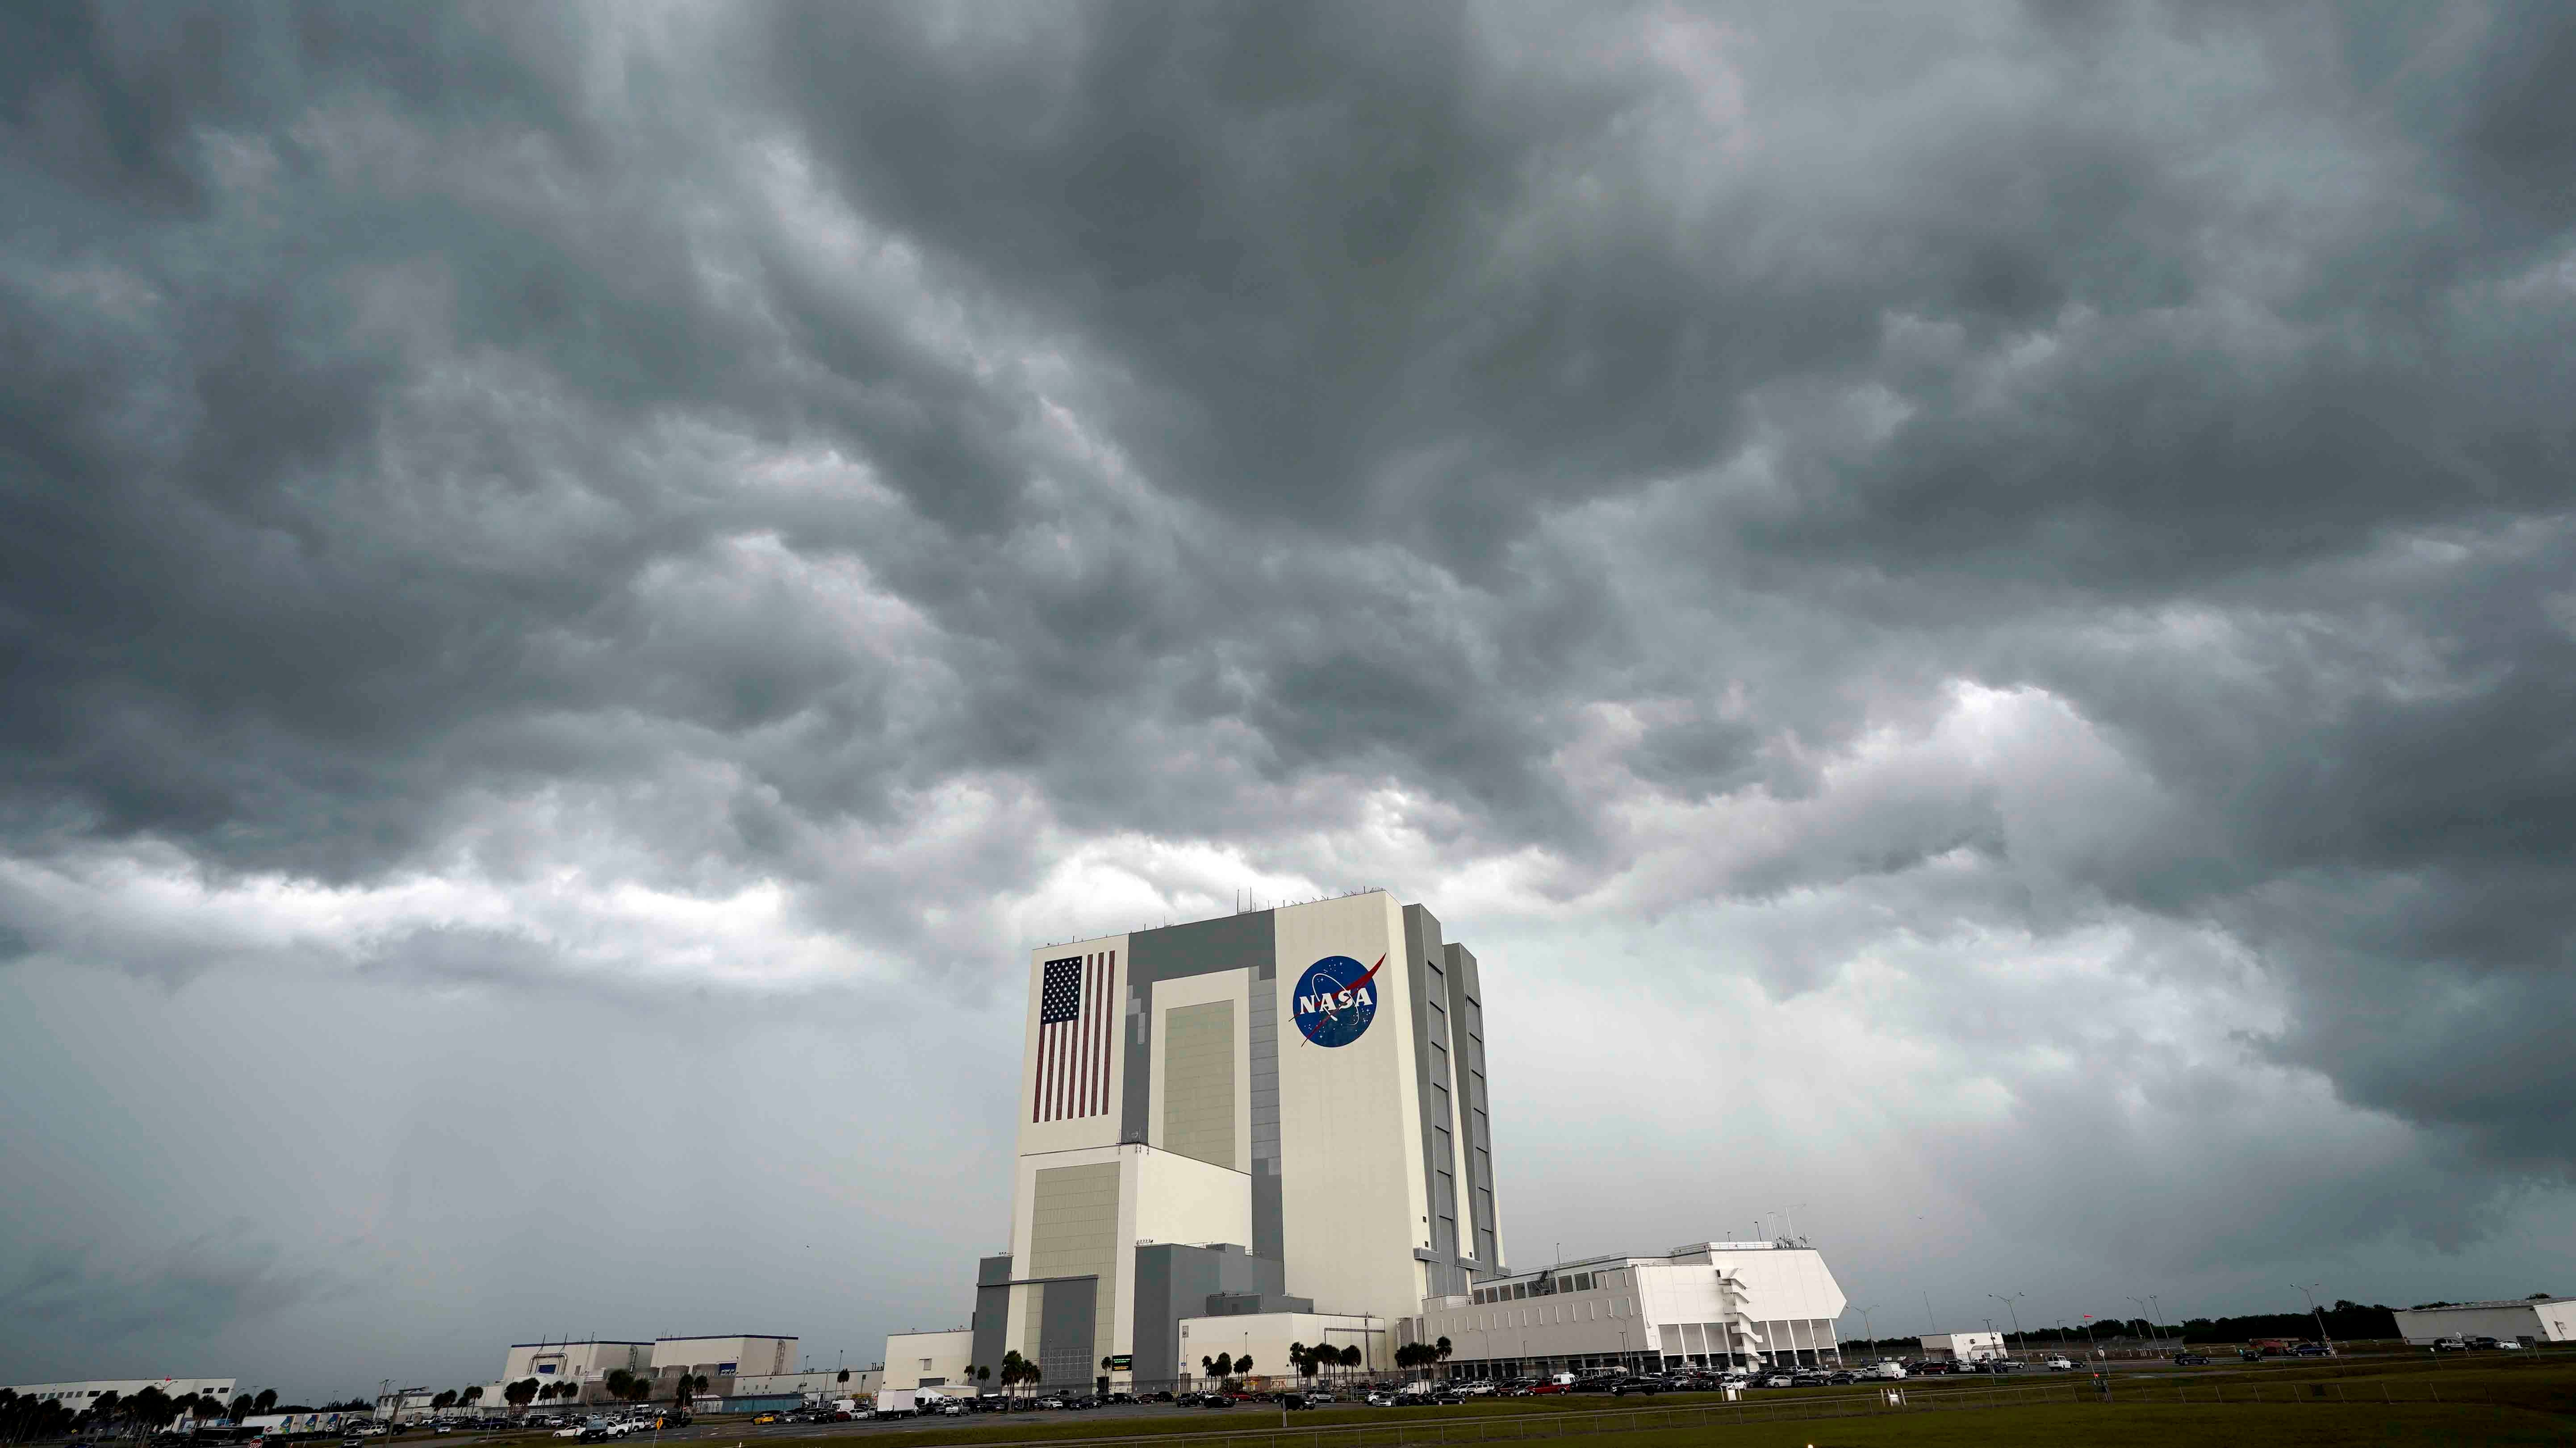 Weather Forecasting Plays Key Role in Launch Safety